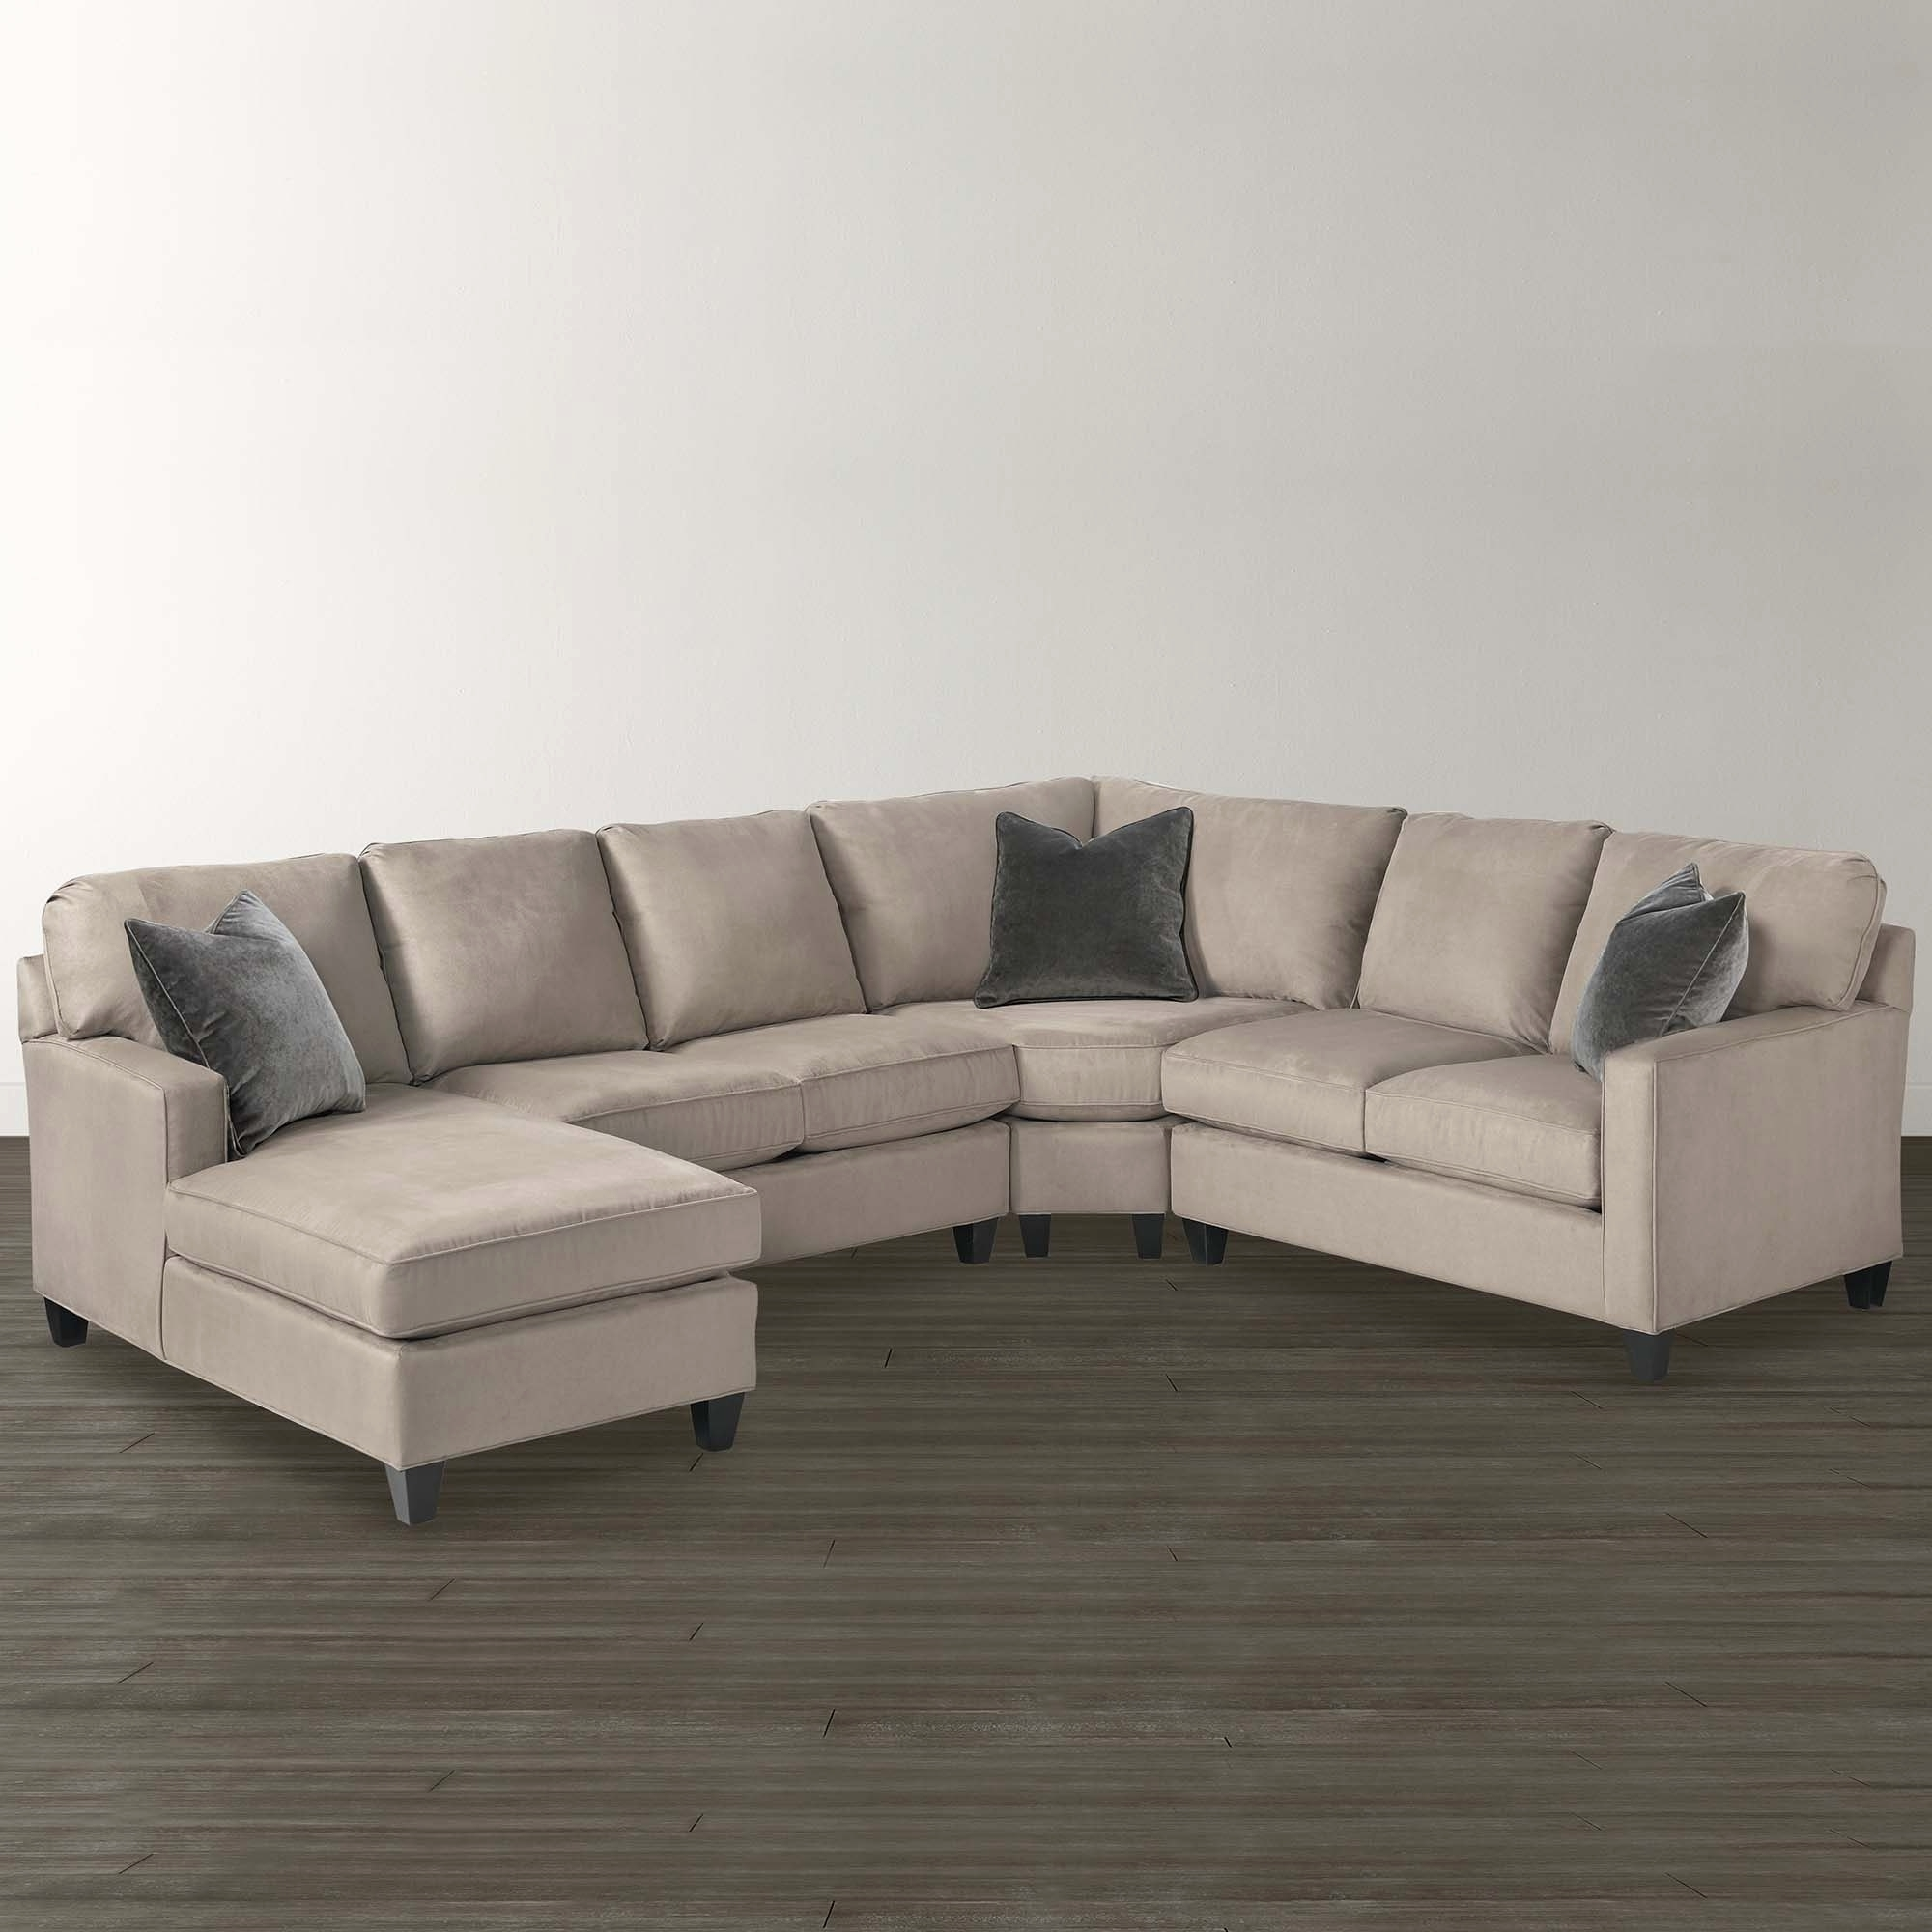 Unusual Sofas Intended For Popular Unique Tan Leather Couch 2018 – Couches And Sofas Ideas (View 10 of 15)